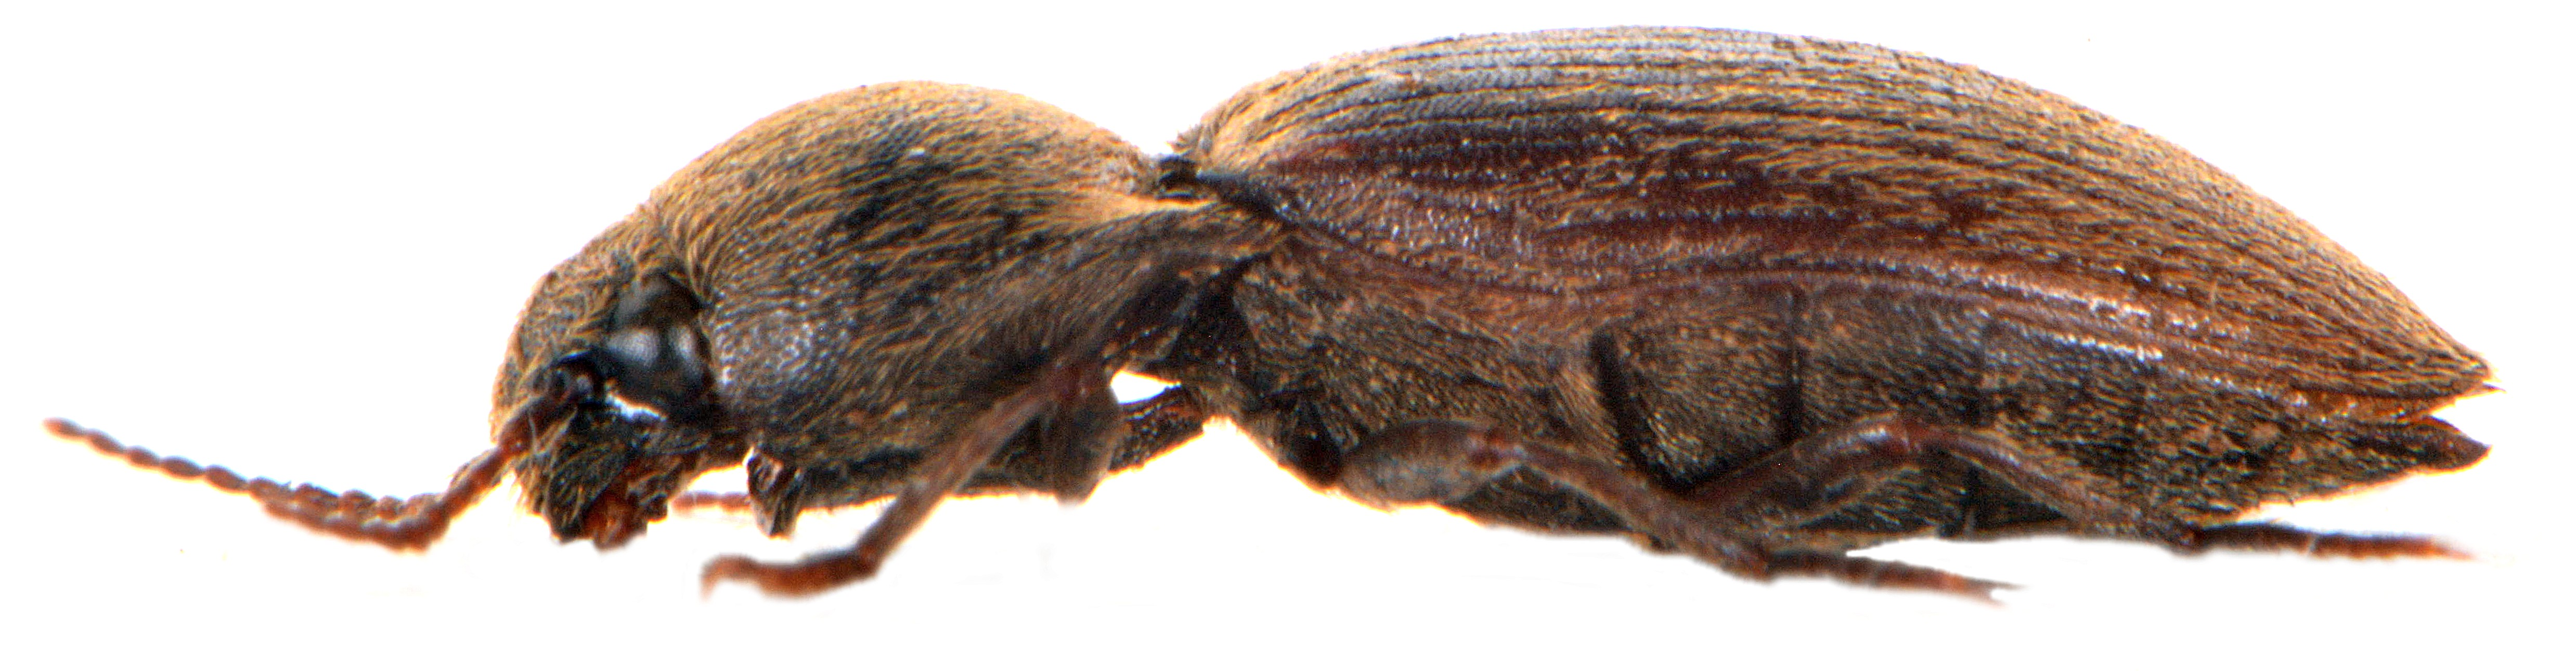 Agriotes obscurus 3